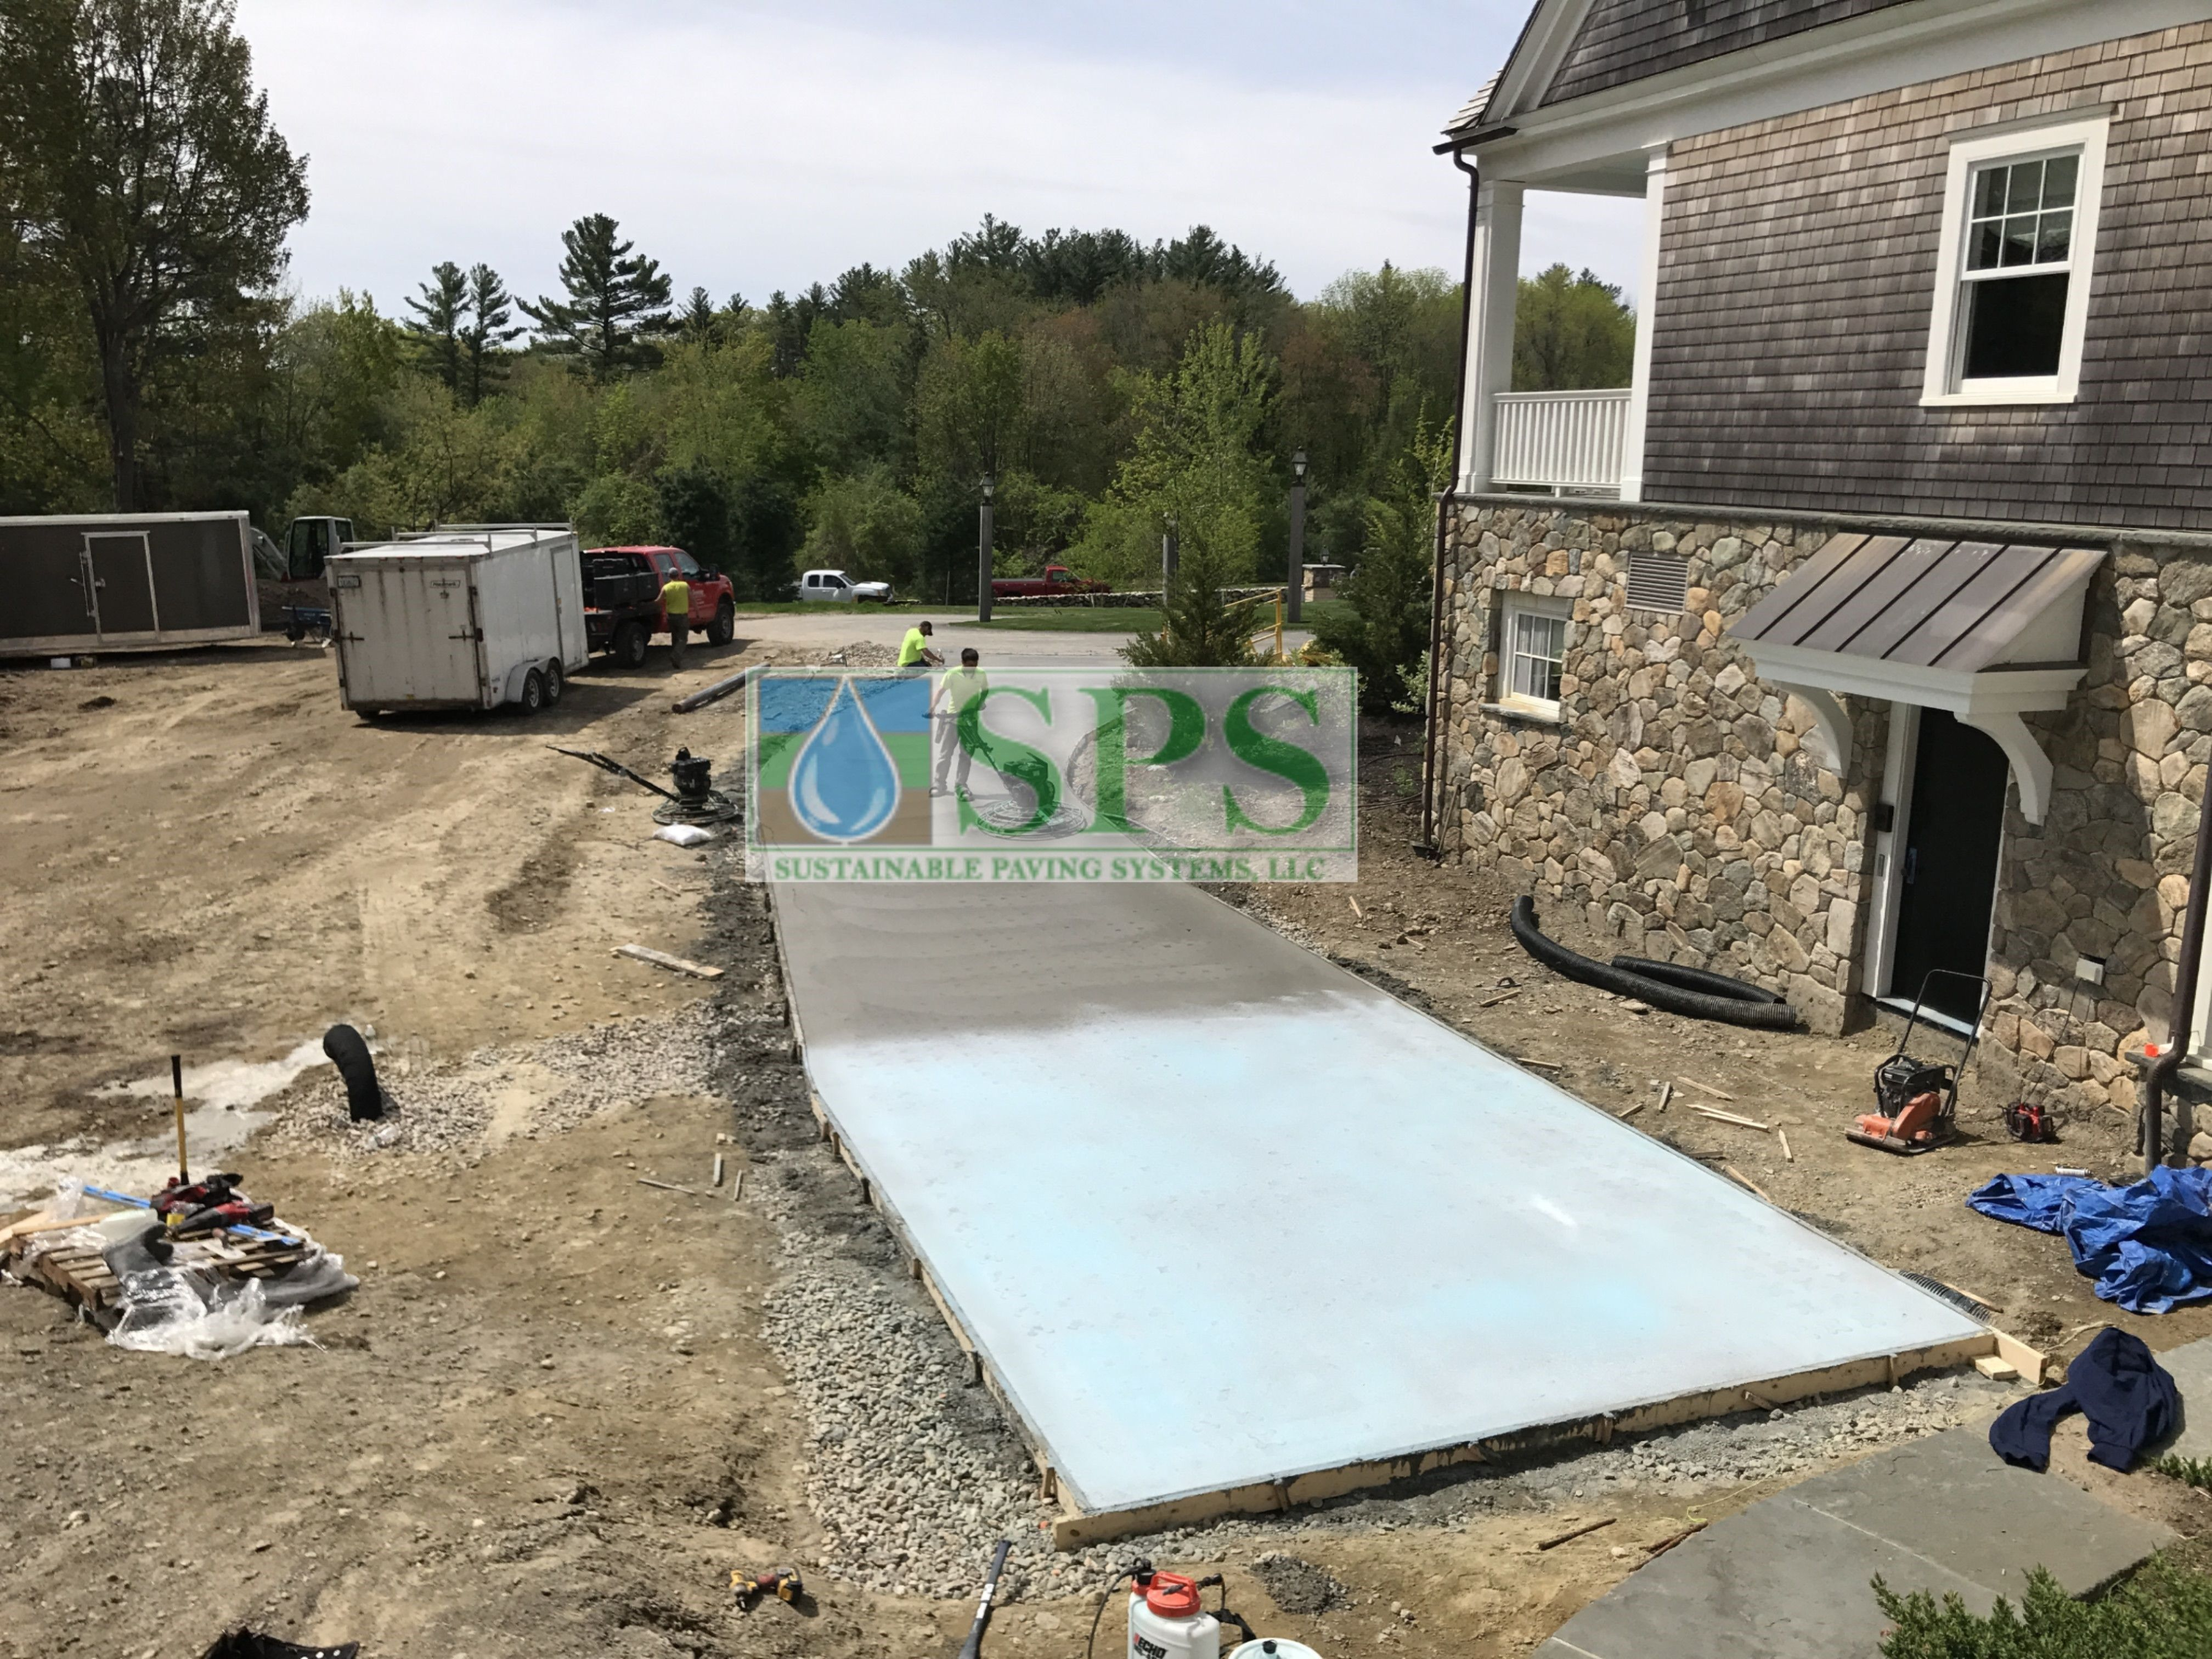 After the pour, Pervious Grascrete concrete is drying and curing before a punch tool is employed to create the voids into which grass will be planted to complete the Partially Concealed Grasscrete System.